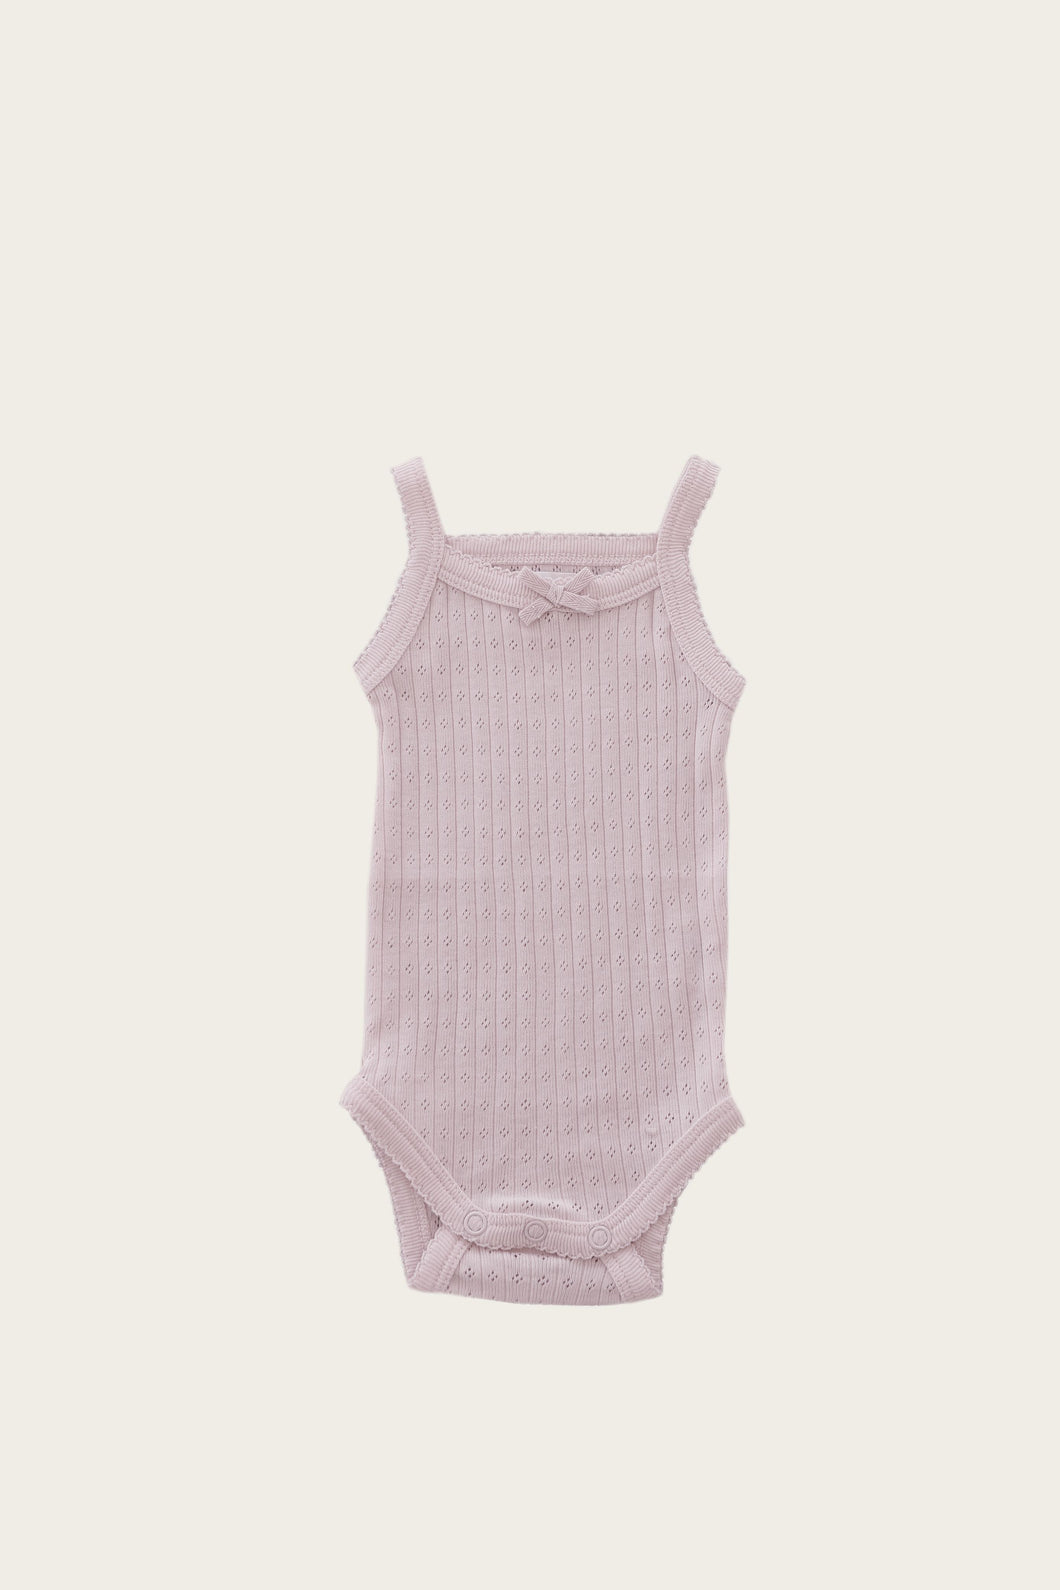 Jamie Kay Singlet Bodysuit in Old Rose